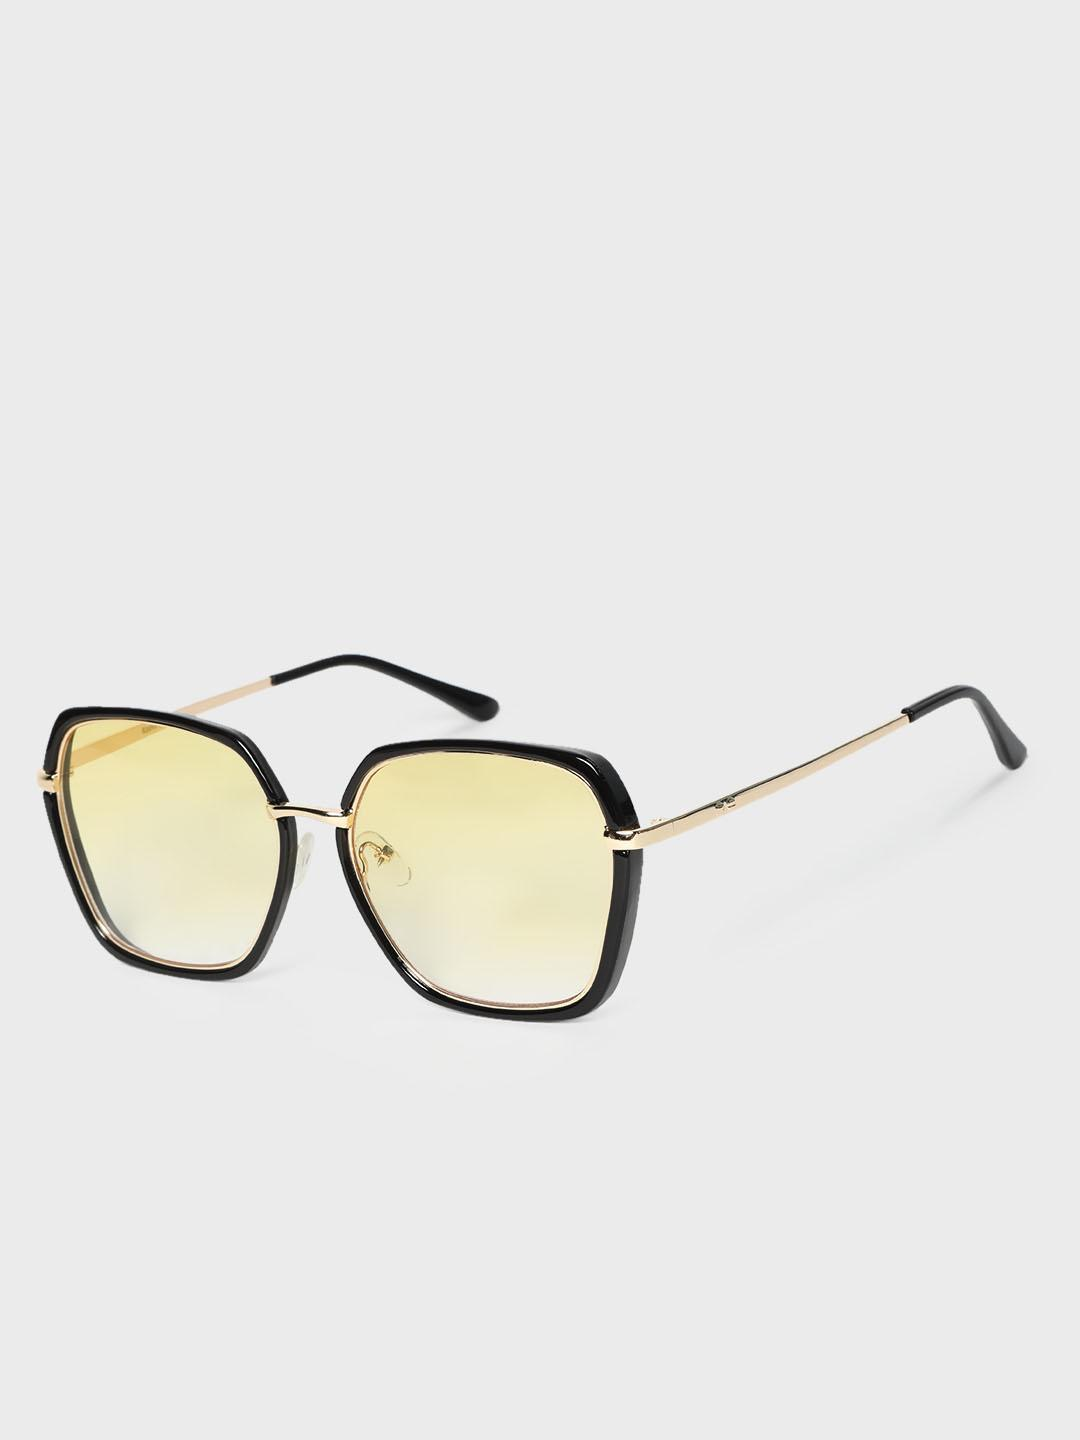 KOOVS Yellow Tinted Lens Square Sunglasses 1